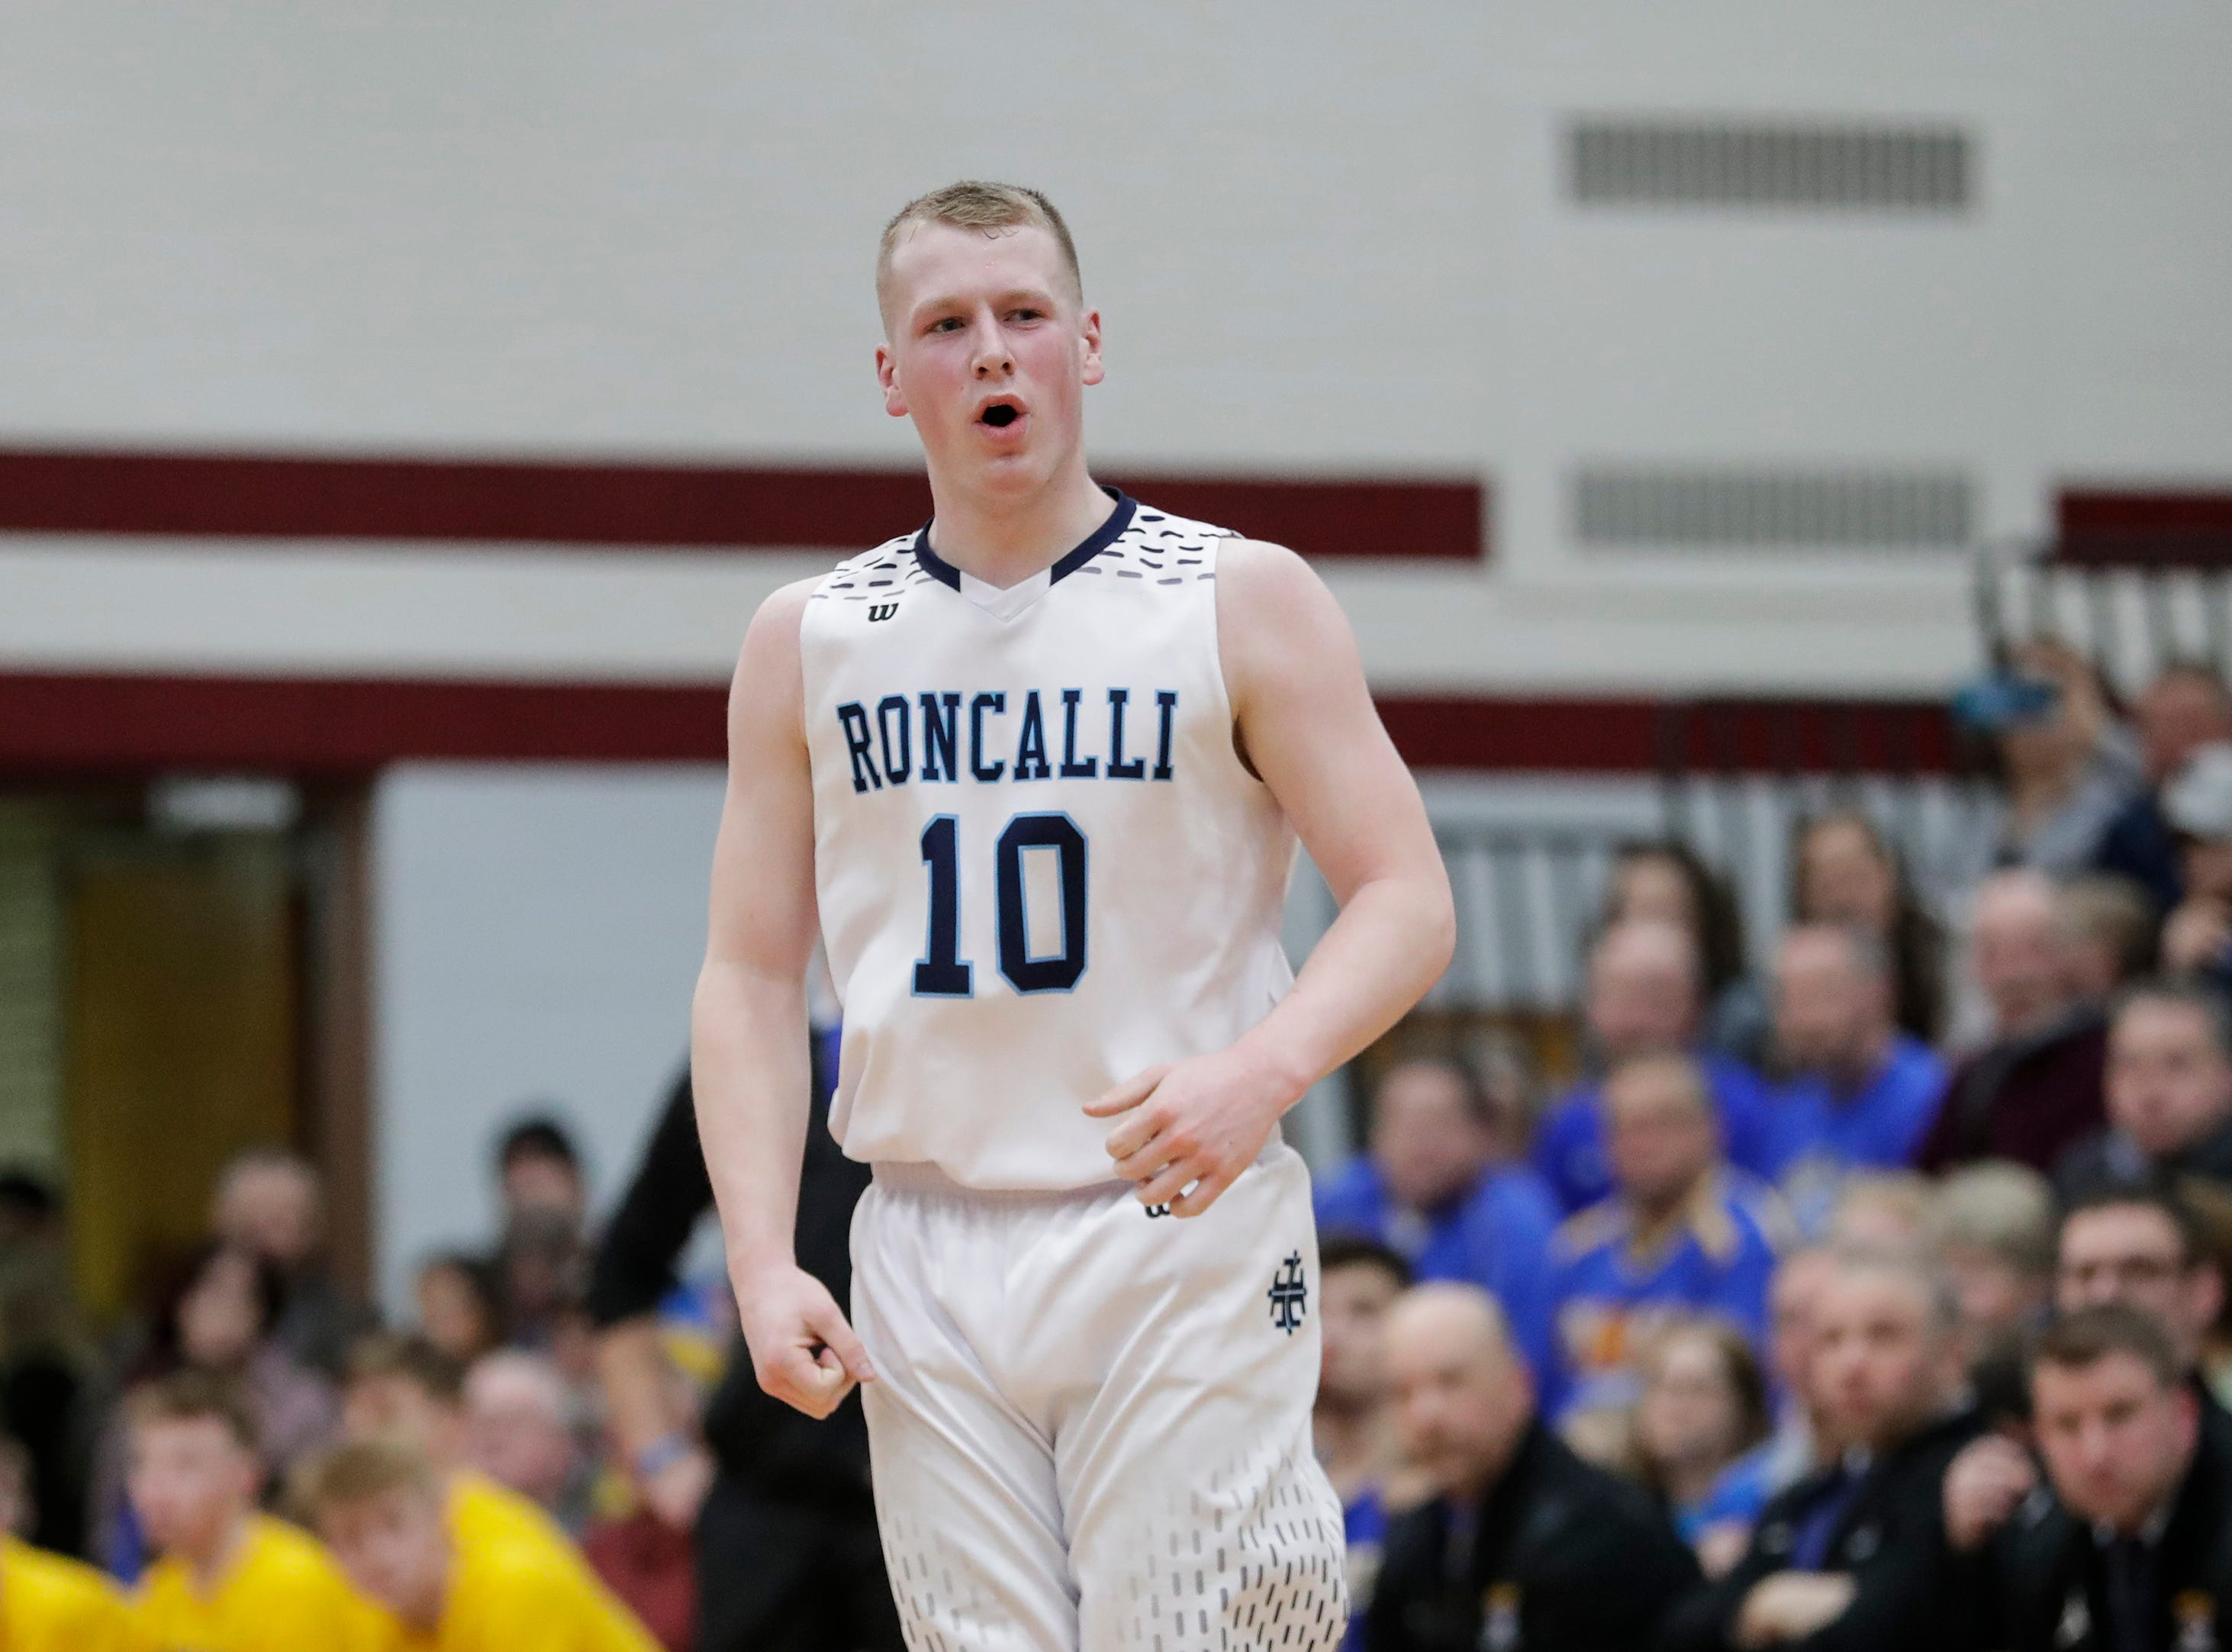 Roncalli's Matt Le Vene reacts after sinking a three against Howards Grove in a WIAA Division 4 sectional semifinal at New Holstein High School Thursday, March 7, 2019, in New Holstein, Wis. Joshua Clark/USA TODAY NETWORK-Wisconsin